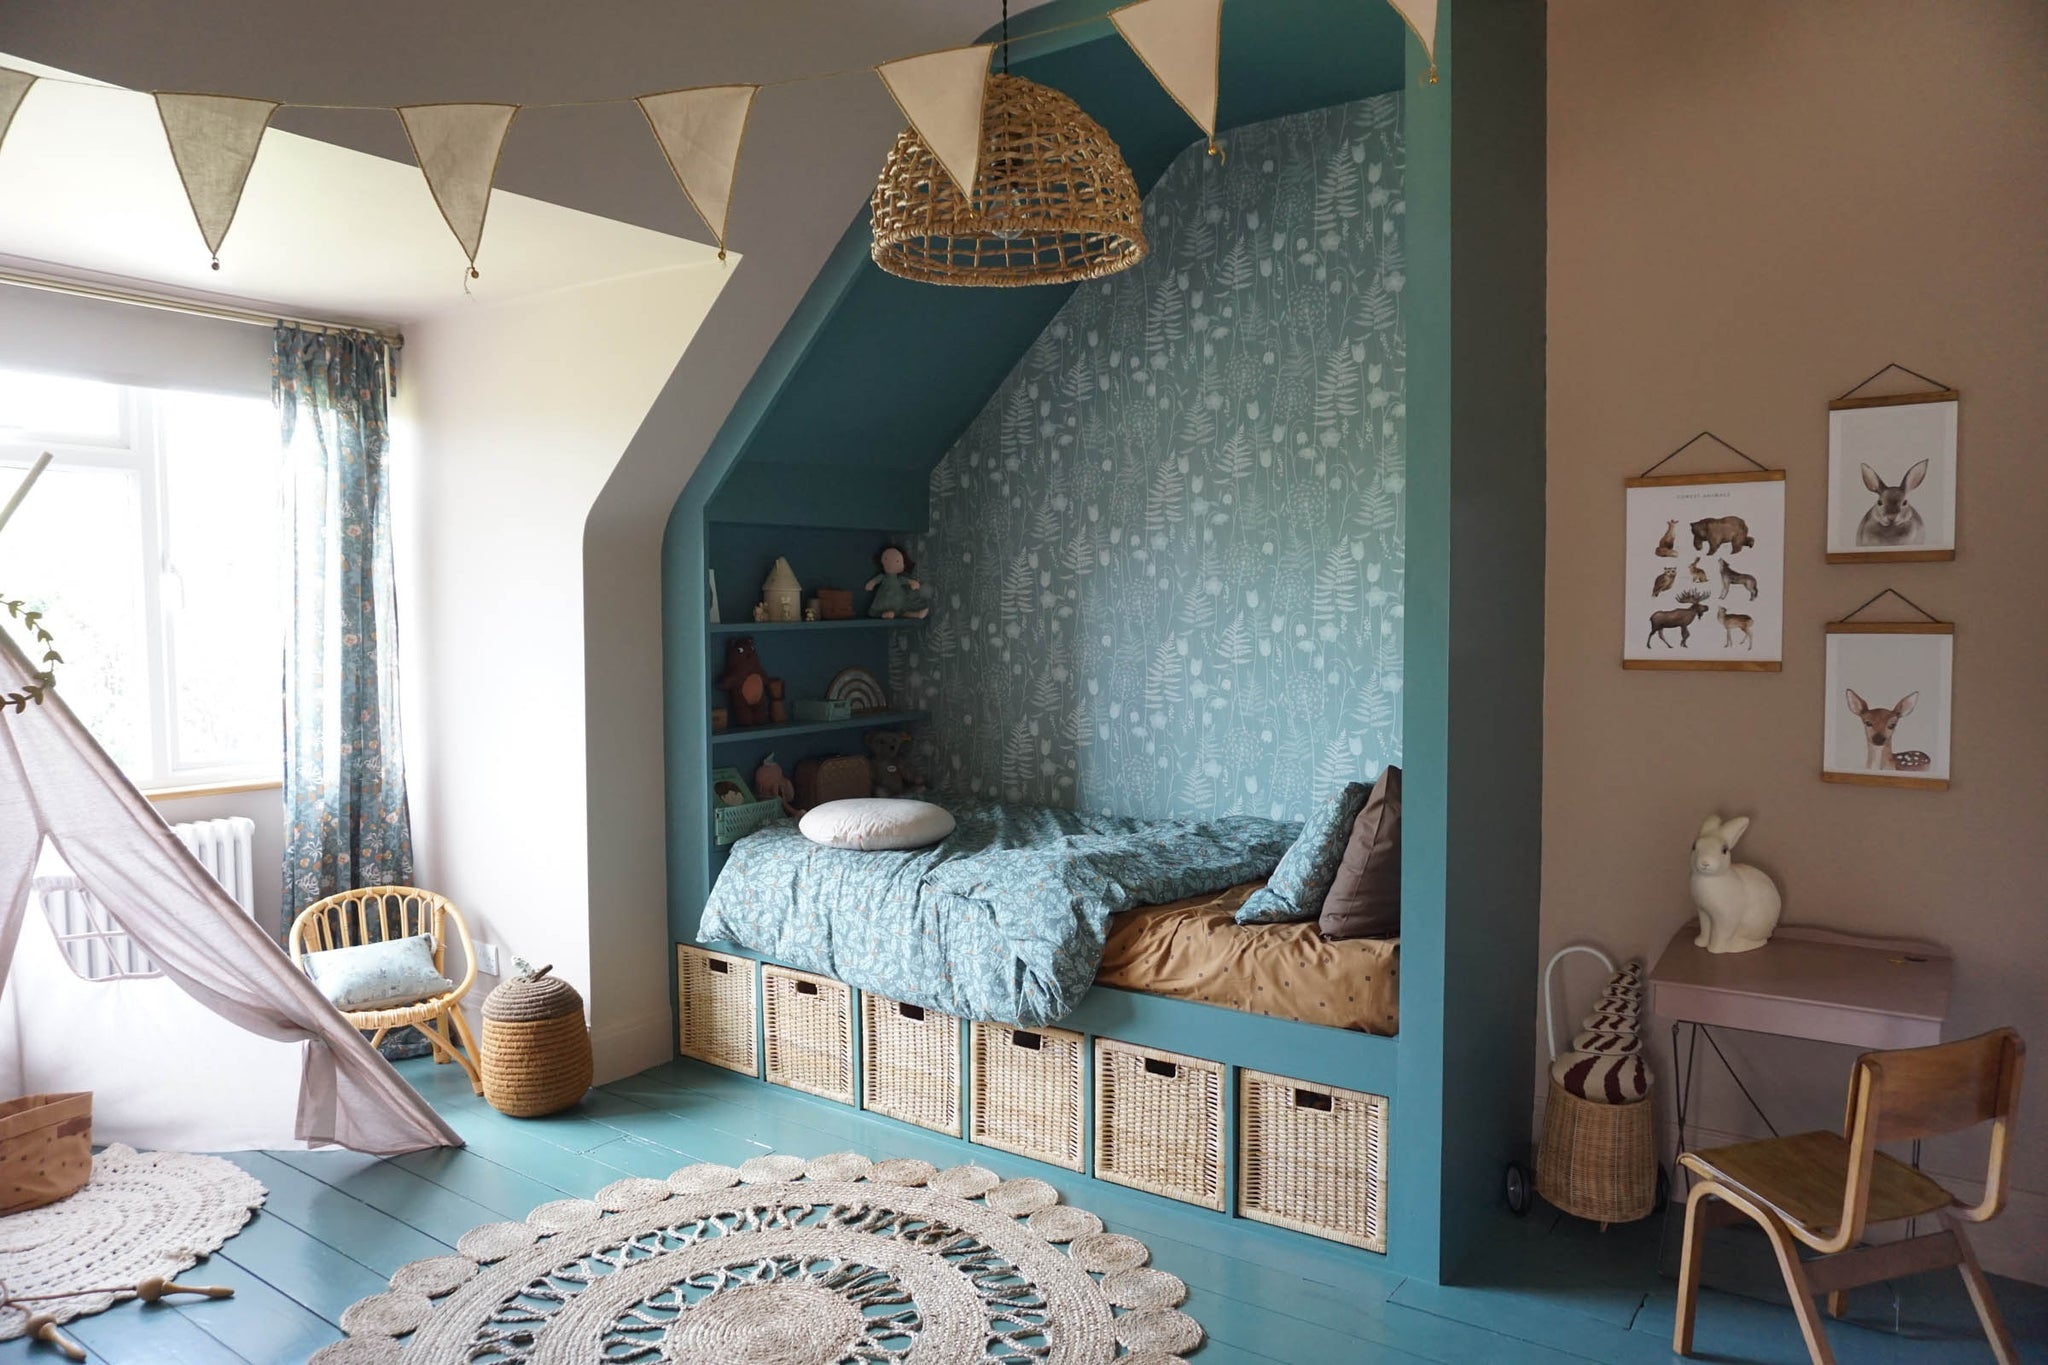 I'm delighted to have my Charlotte's Garden wallpaper (in heath) featured in one of Chloe Spilett's fabulous children's room makeovers.